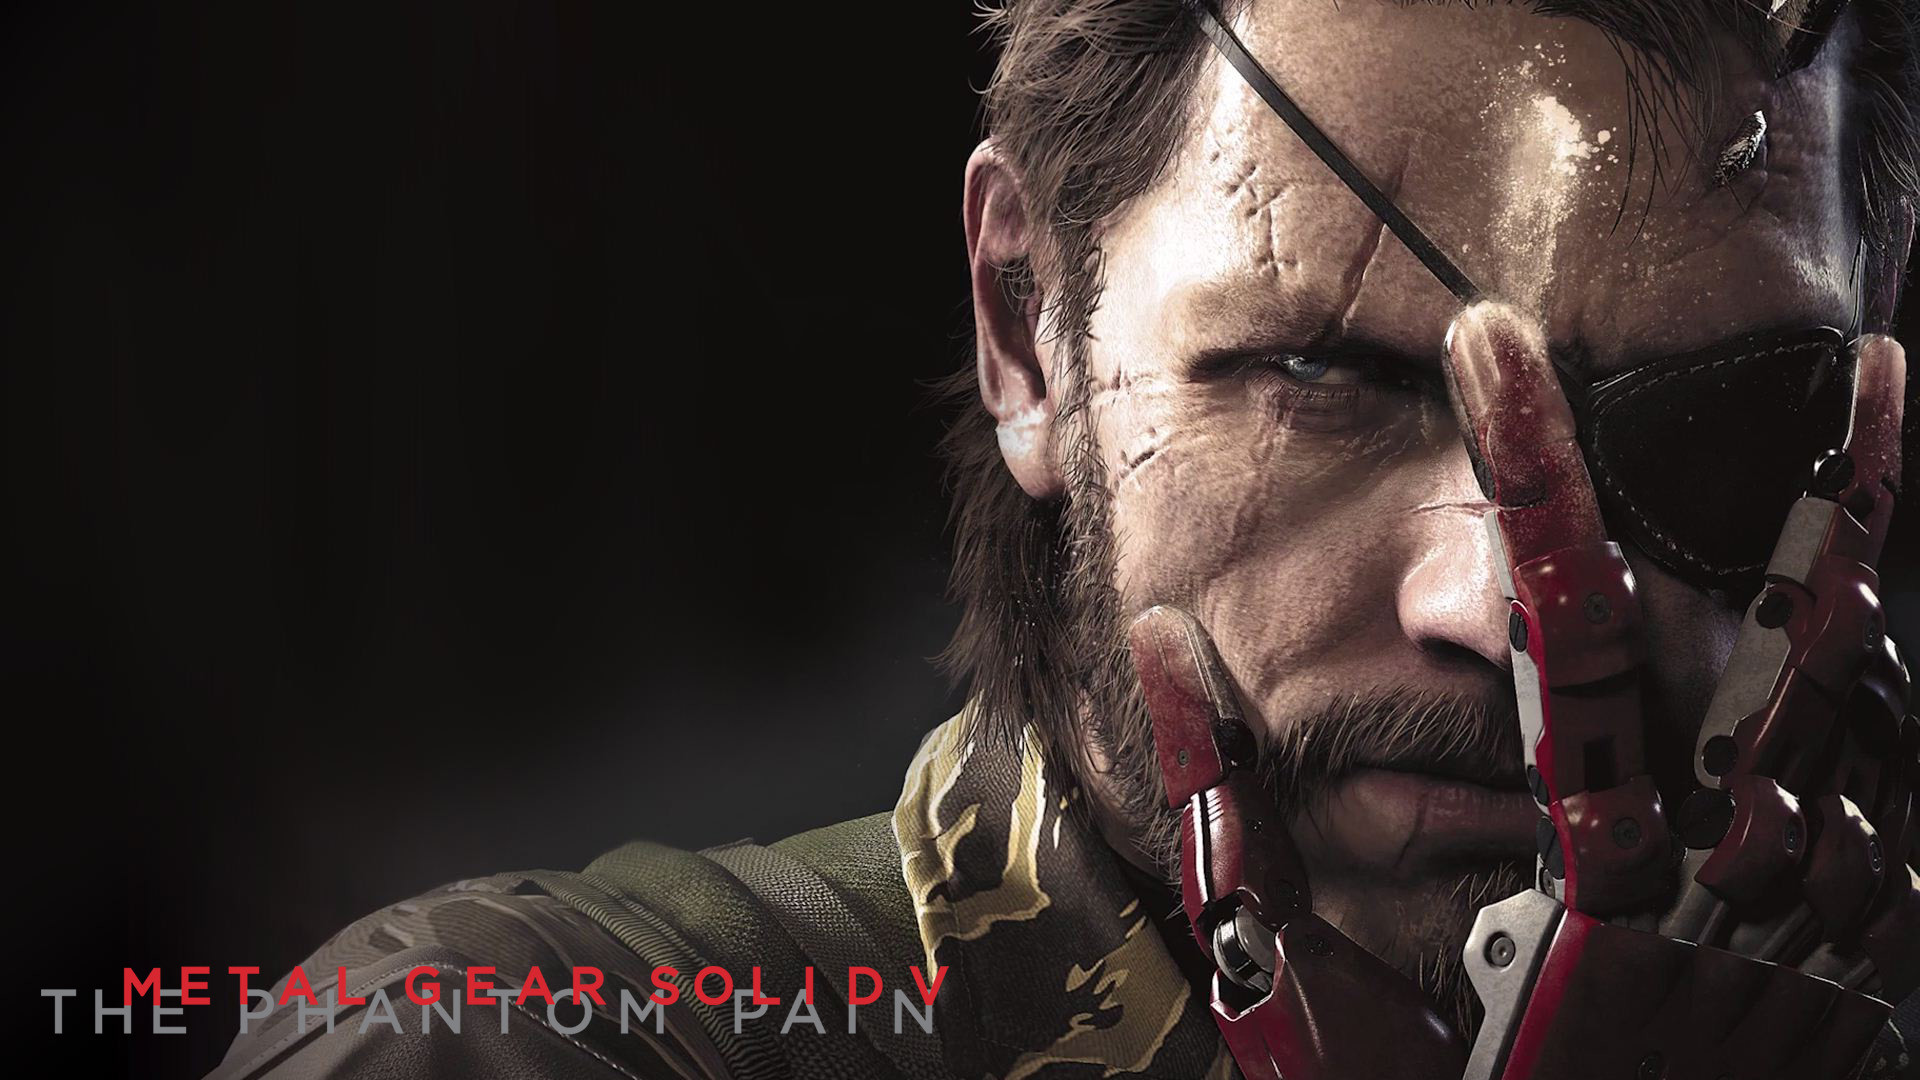 Free Download Mgs5 Phantom Pain Wallpapers 91 Images 1920x1080